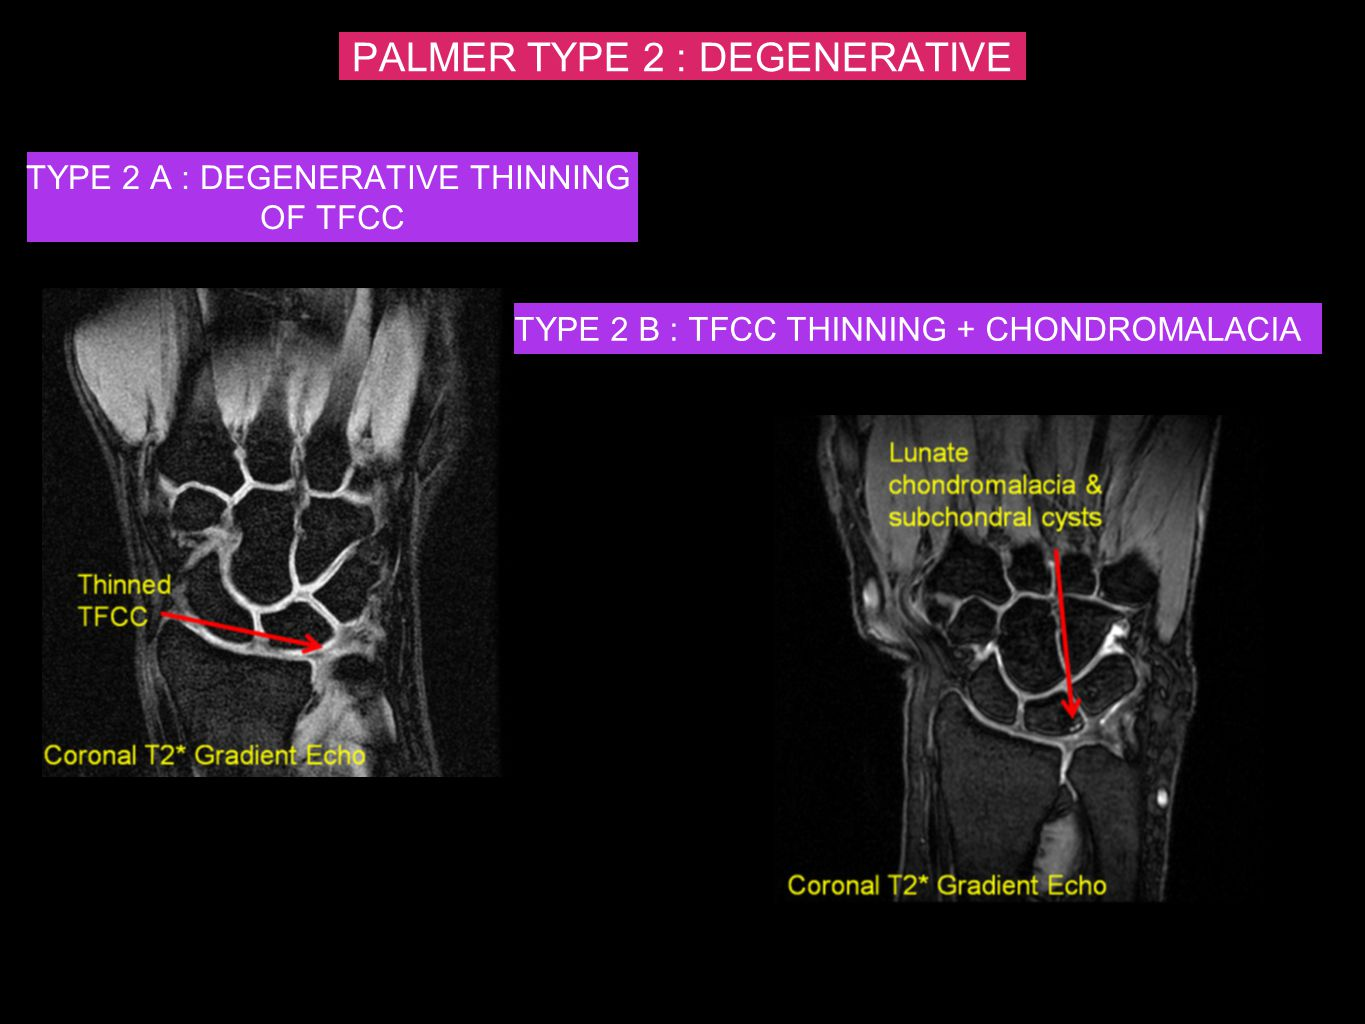 PALMER TYPE 2 : DEGENERATIVE